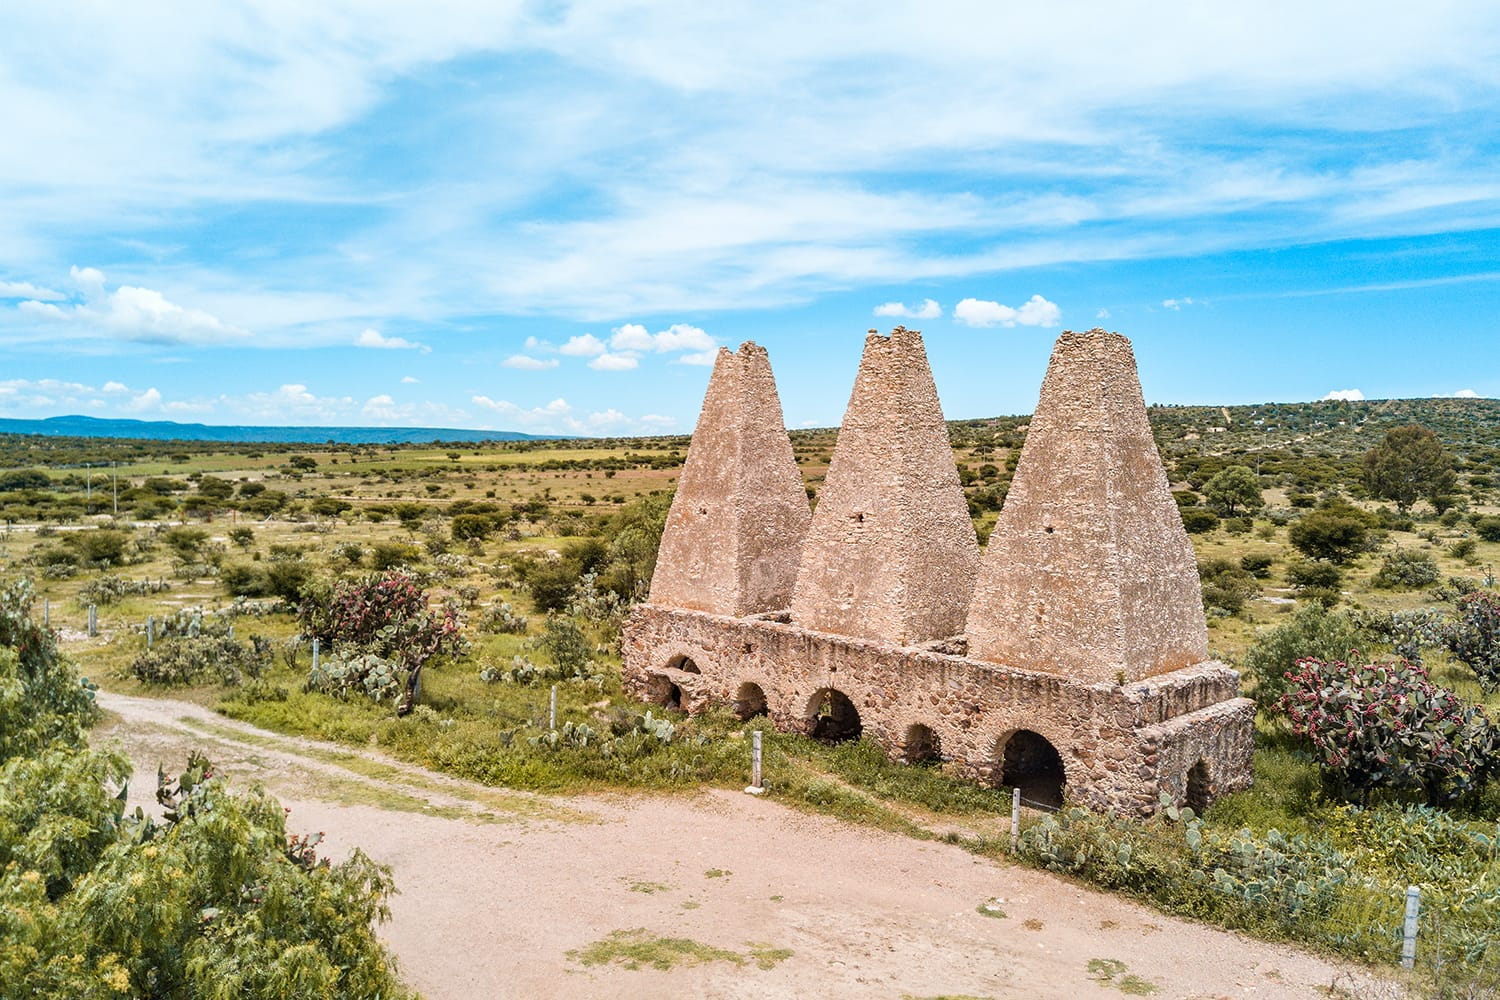 Abandoned ruins of old mining estates at Mineral de Pozos in Guanajuato, Mexico